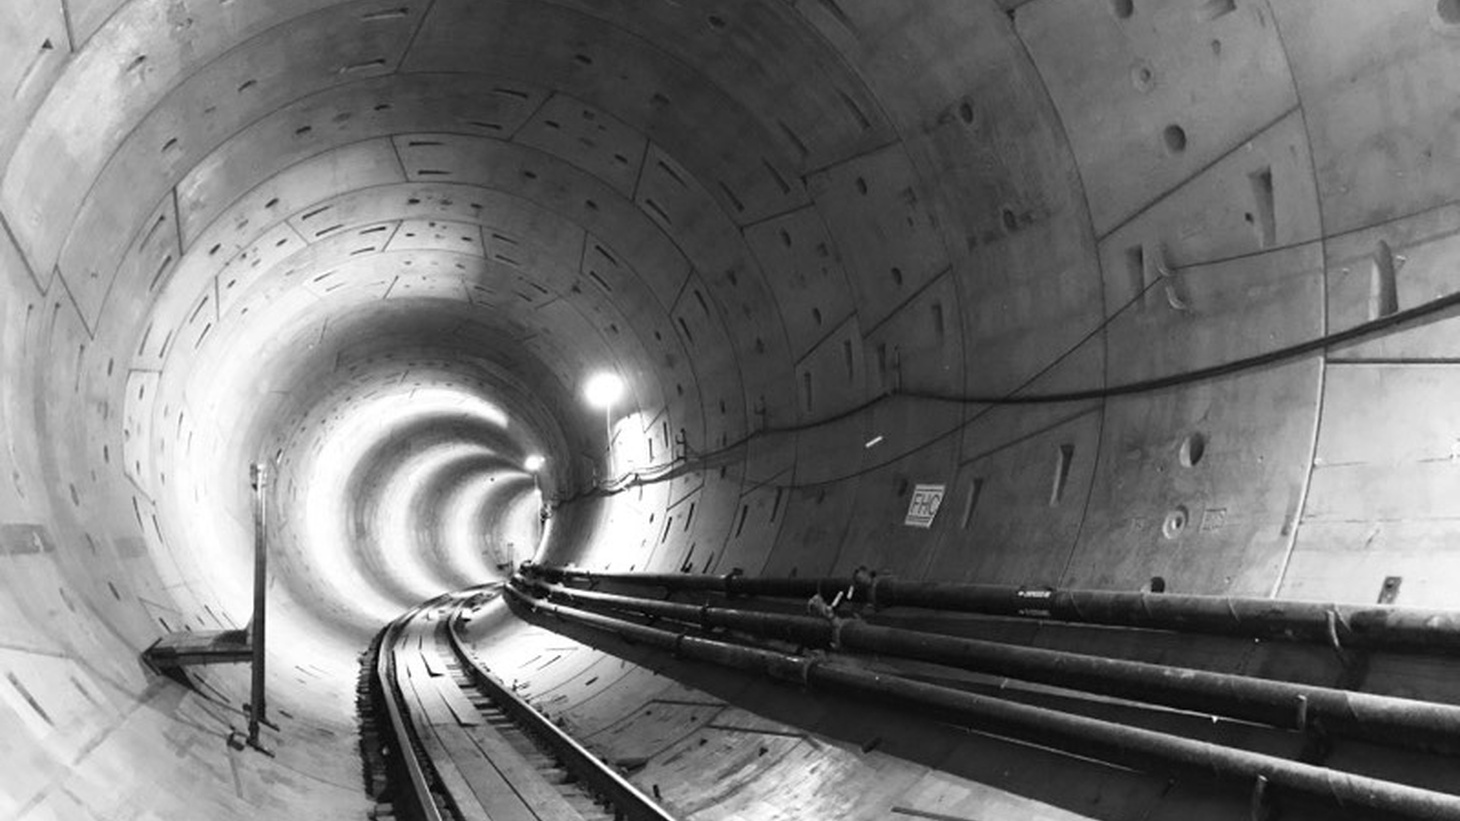 Los Angeles has tunnel vision. DnA tours the Downtown Regional Connector, as Elon Musk digs his own tunnel. United Airlines flies its last Boeing 747 flight. DnA meets nostalgic pilots and hears about what's coming next for airline passengers. Plus, Pacific Standard Time: LA/LA is not over. DnA takes a road trip to see three desert shows.